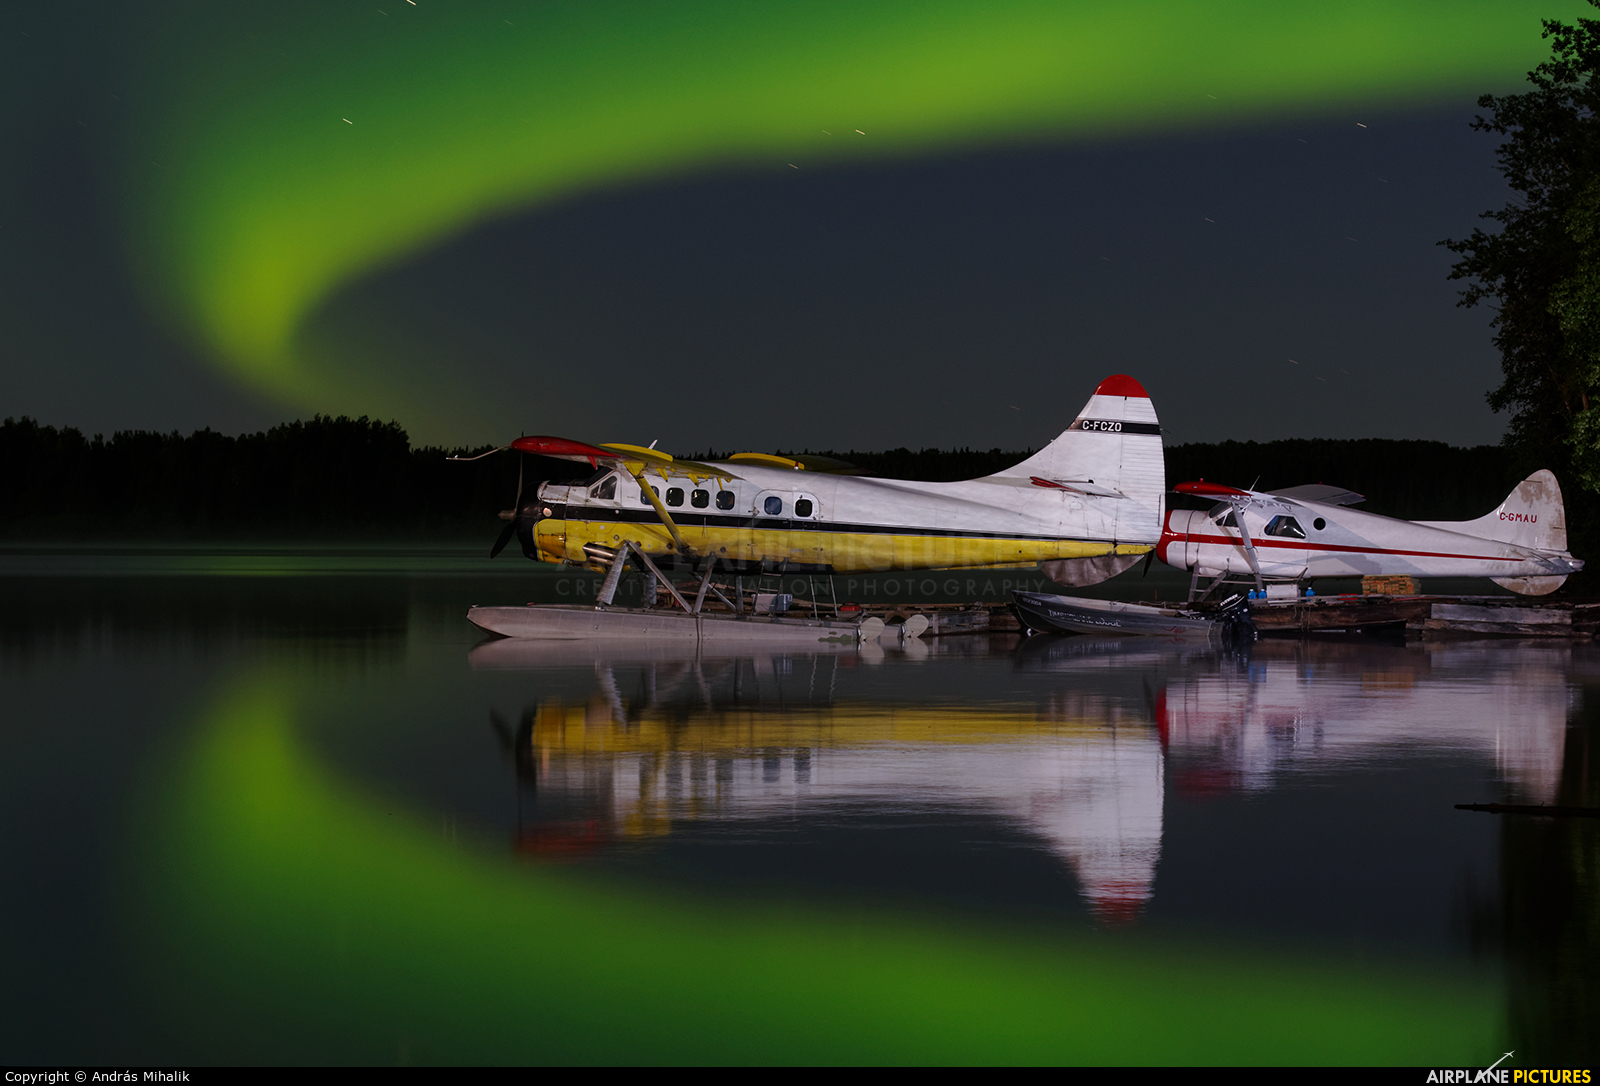 Osnaburgh Airways C-FCZO aircraft at Pickle Lake, ON